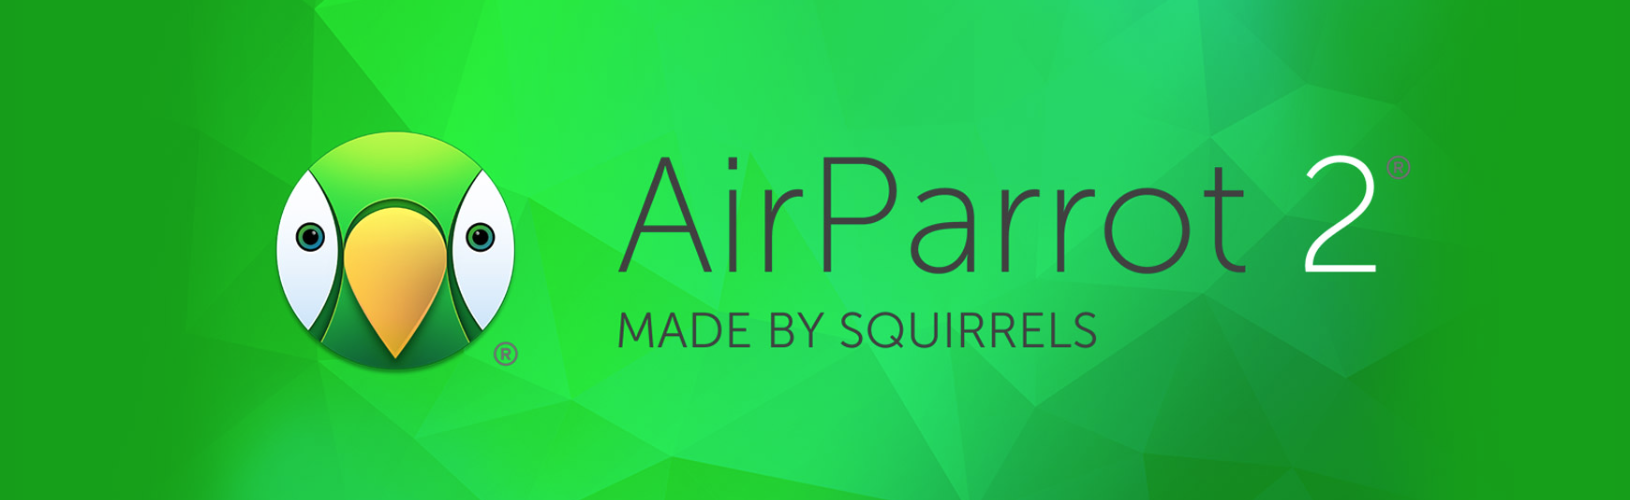 airparrot 2 download pc